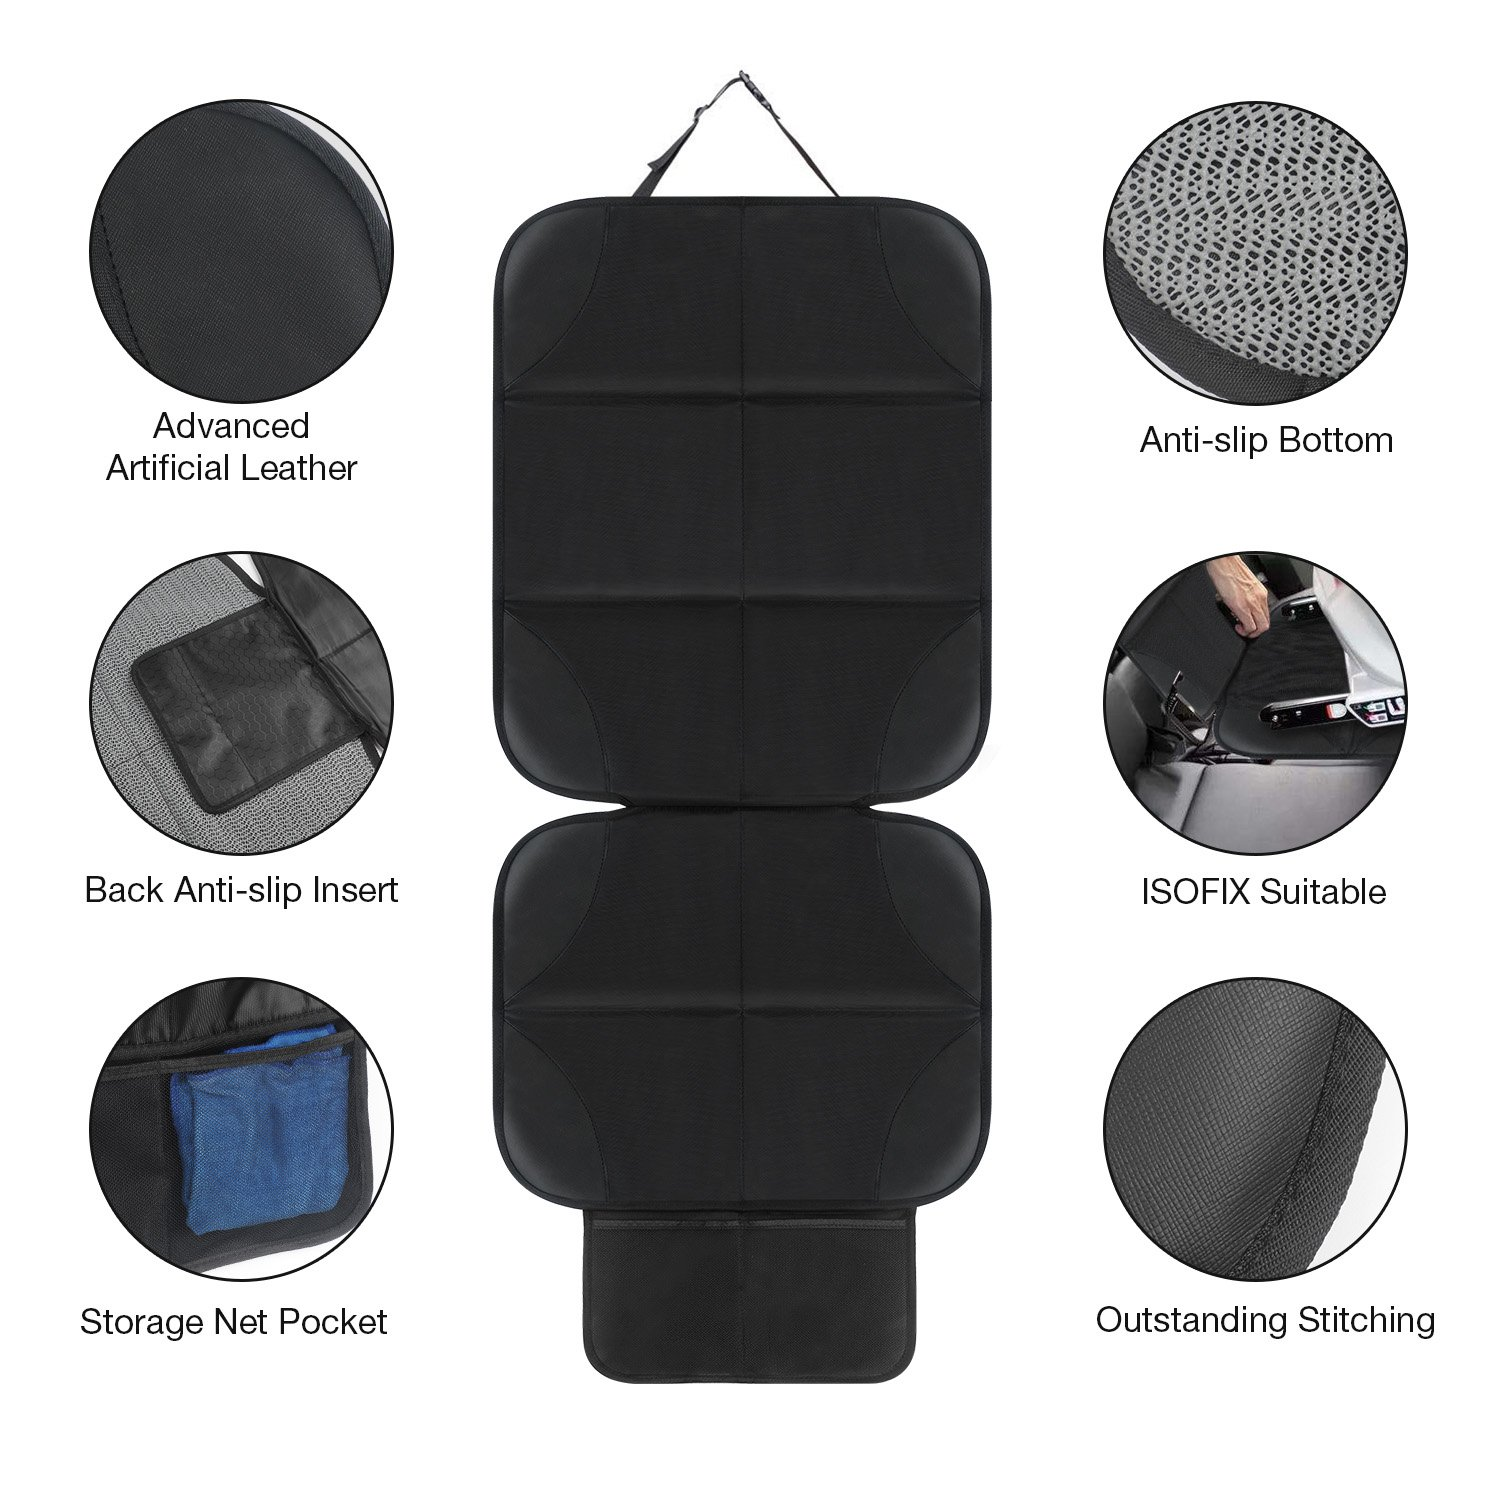 AOAFUN 1 Set Car Seat Protector&Kick Mat Auto Seat Back Protector,Extra Large Storage Pocket,Prevents Dirt and Damage-Allows Easy Access to Baby Items! (Black) by AOAFUN (Image #3)